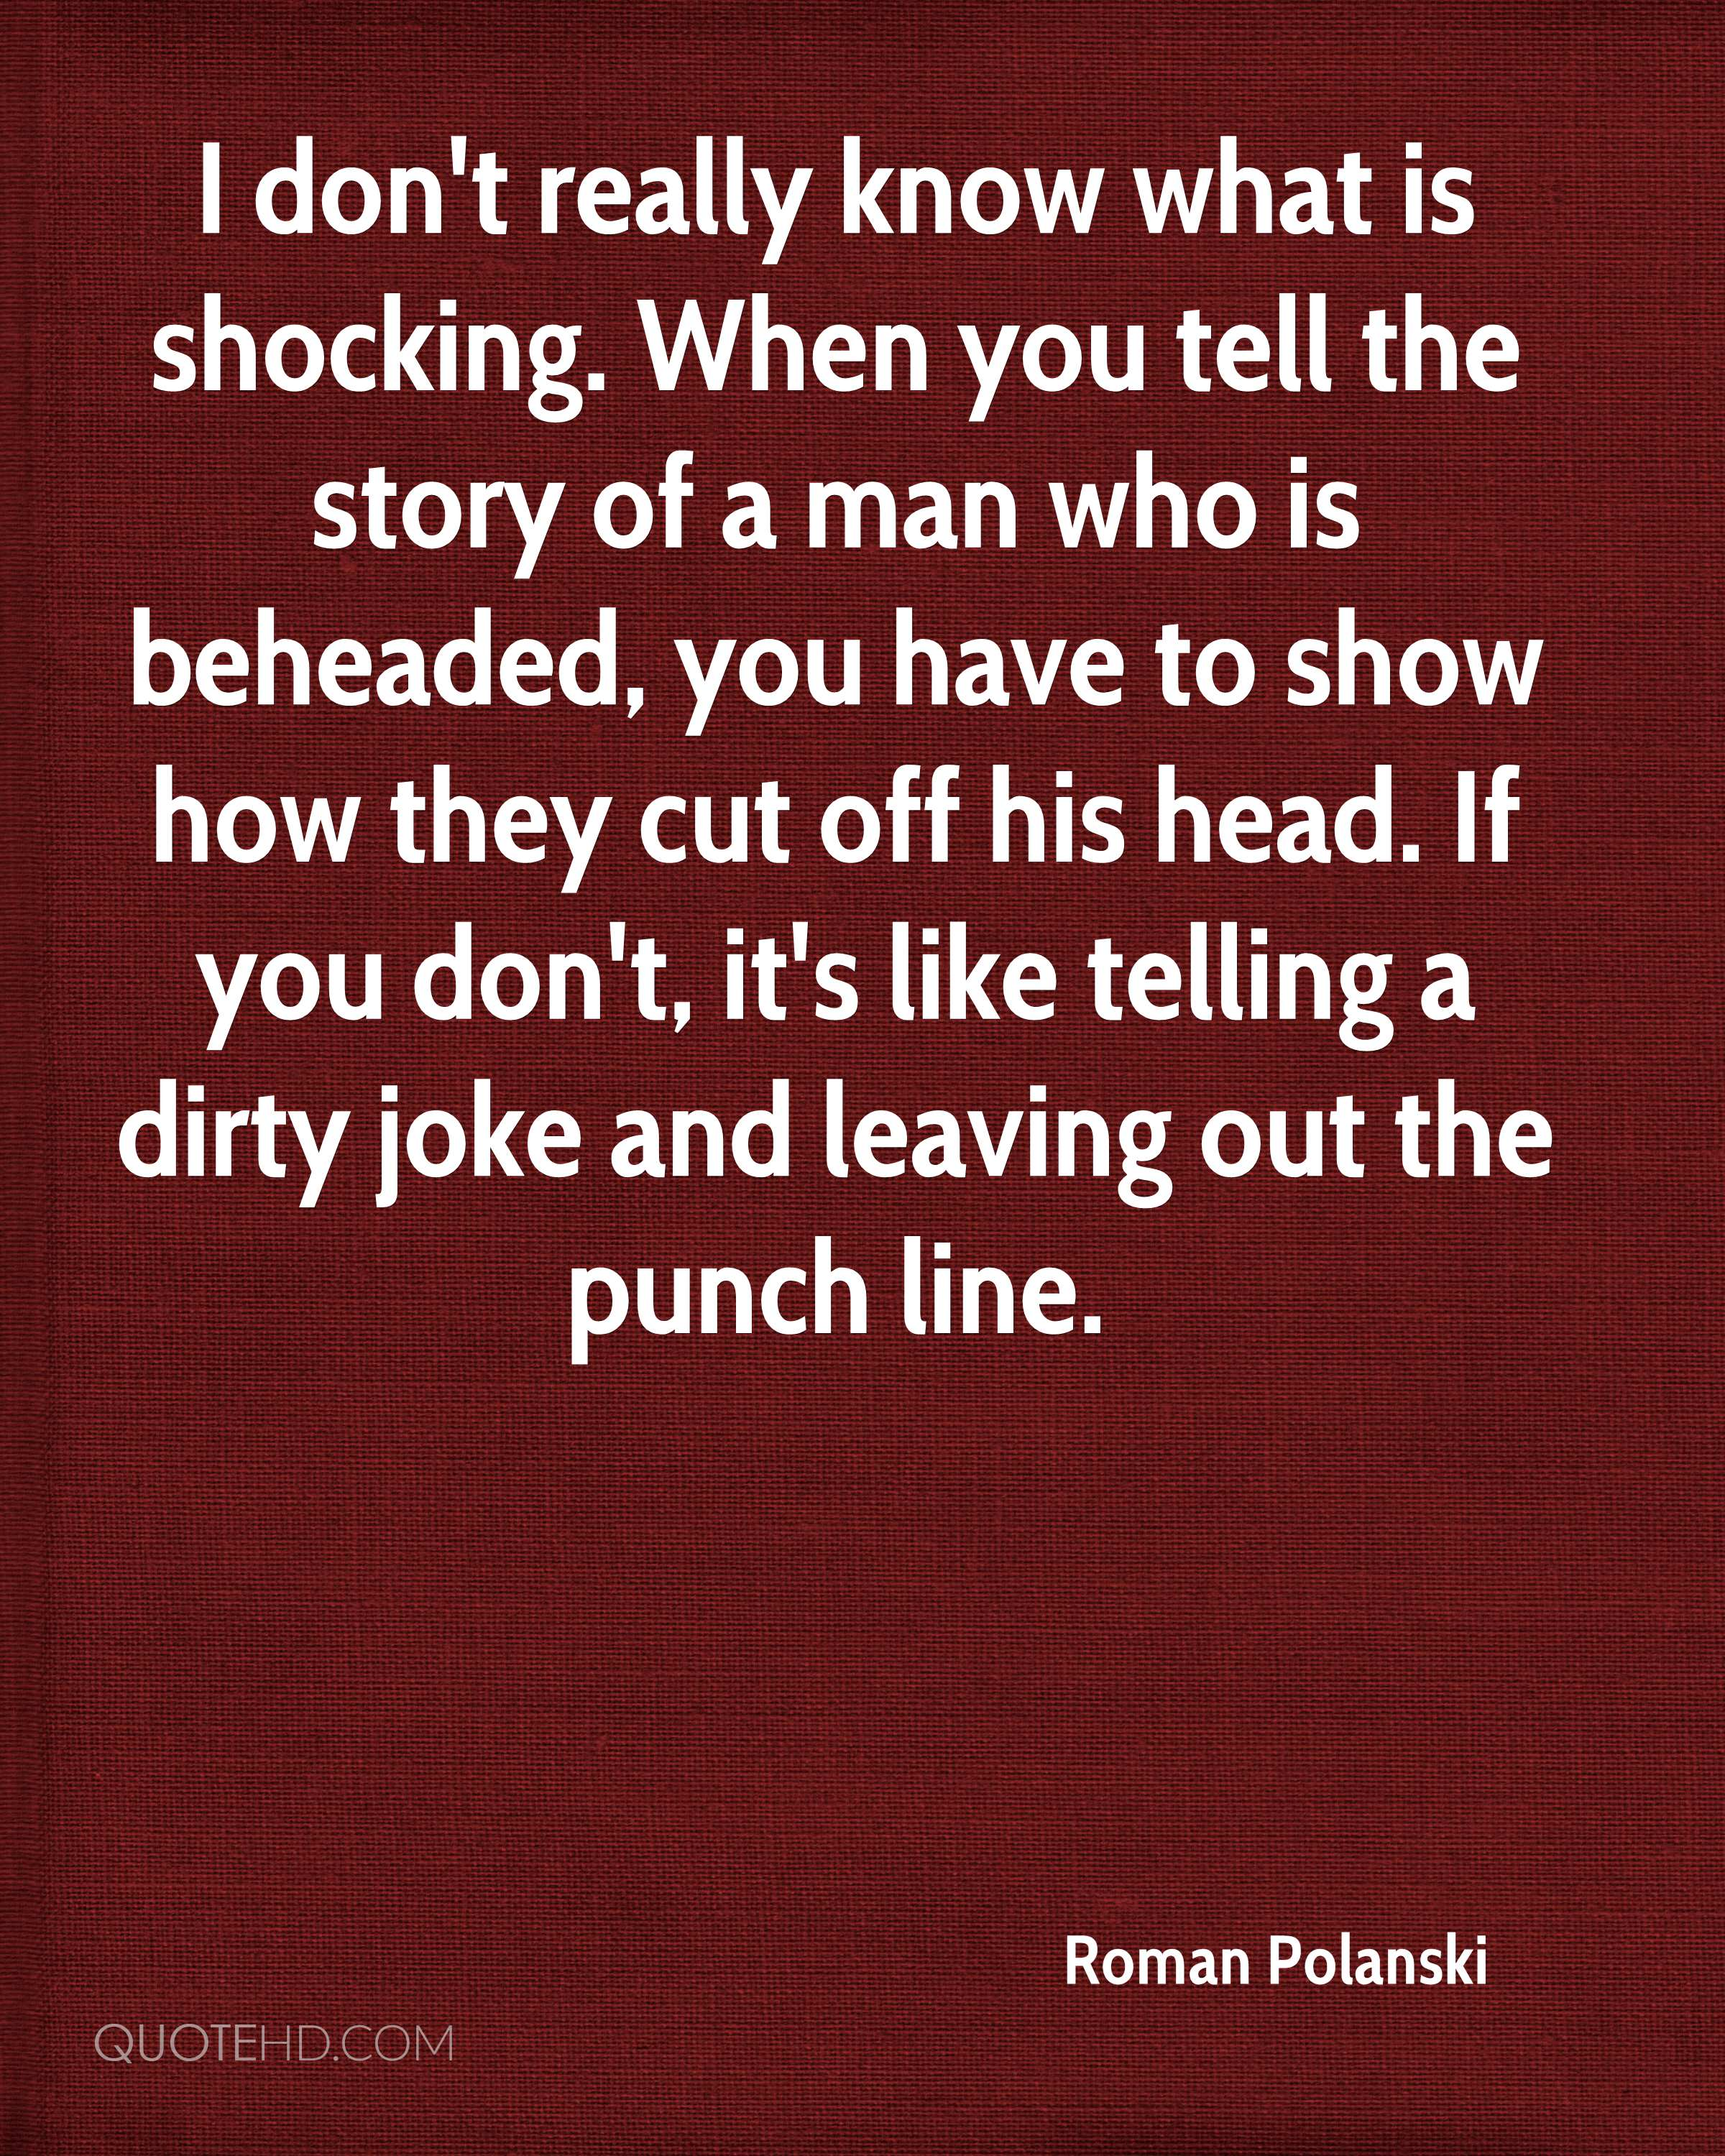 I don't really know what is shocking. When you tell the story of a man who is beheaded, you have to show how they cut off his head. If you don't, it's like telling a dirty joke and leaving out the punch line.